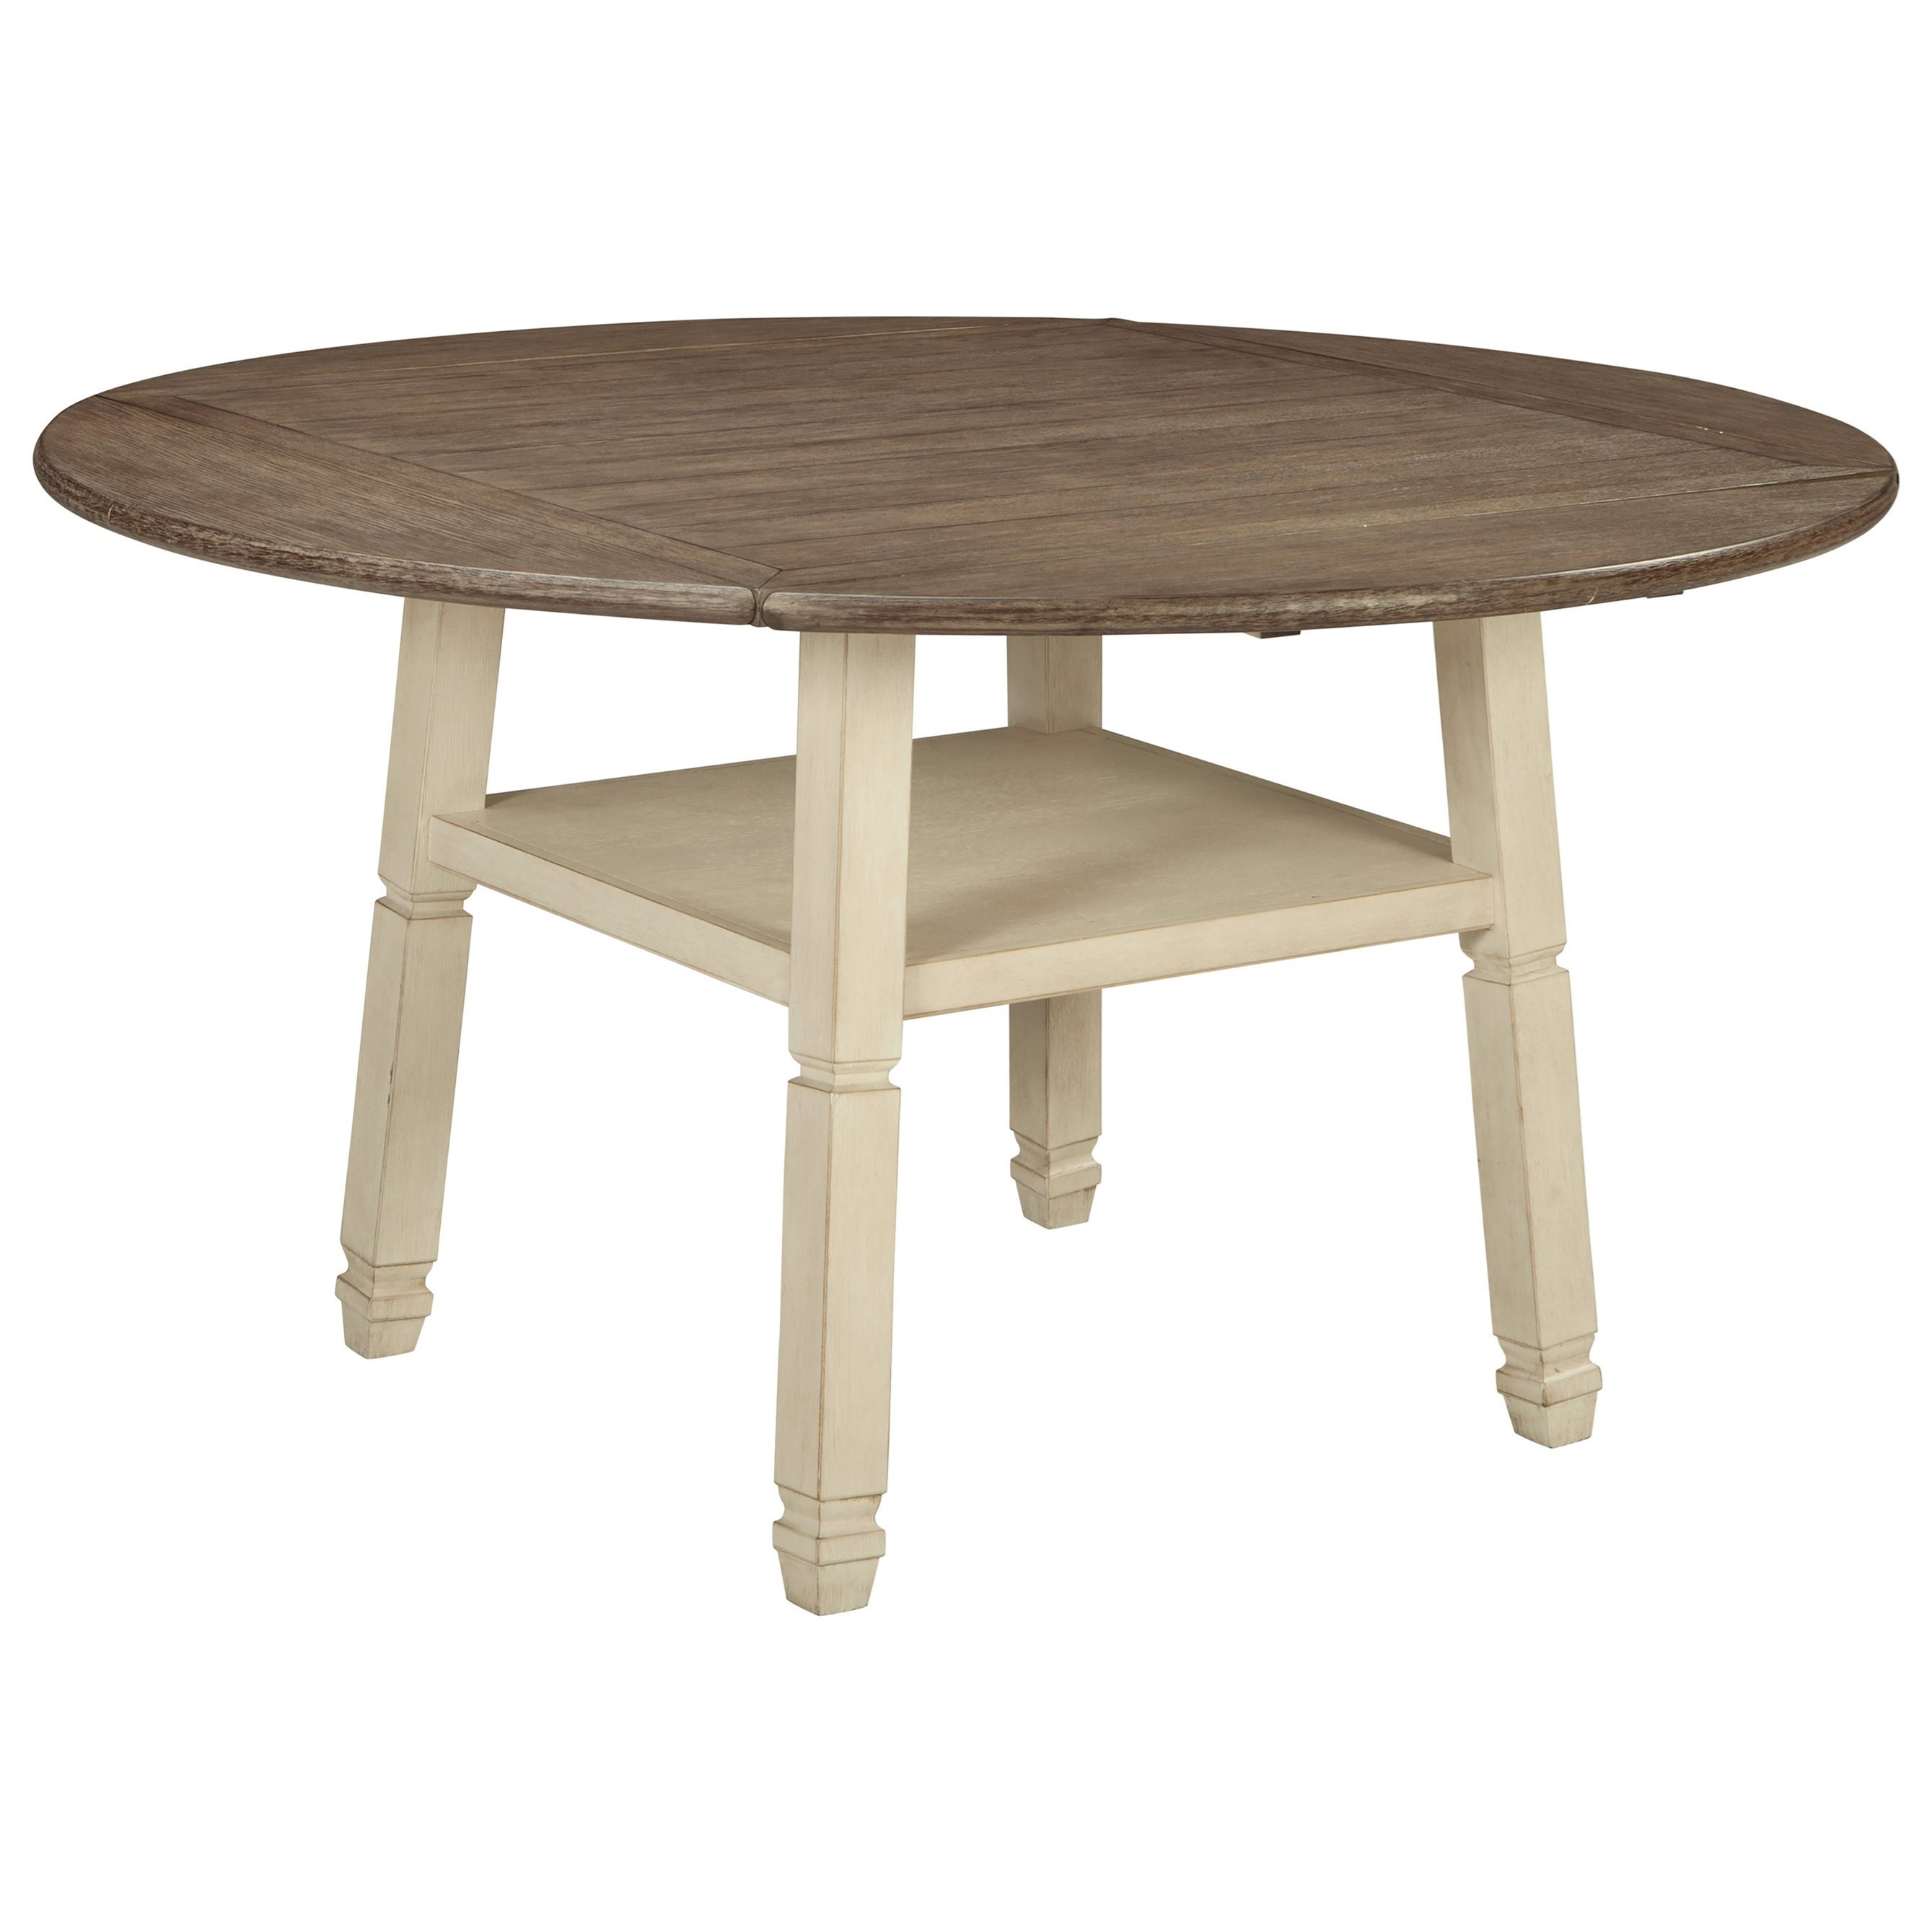 signature design by ashley bolanburg square round drop leaf counter table with shelf value. Black Bedroom Furniture Sets. Home Design Ideas